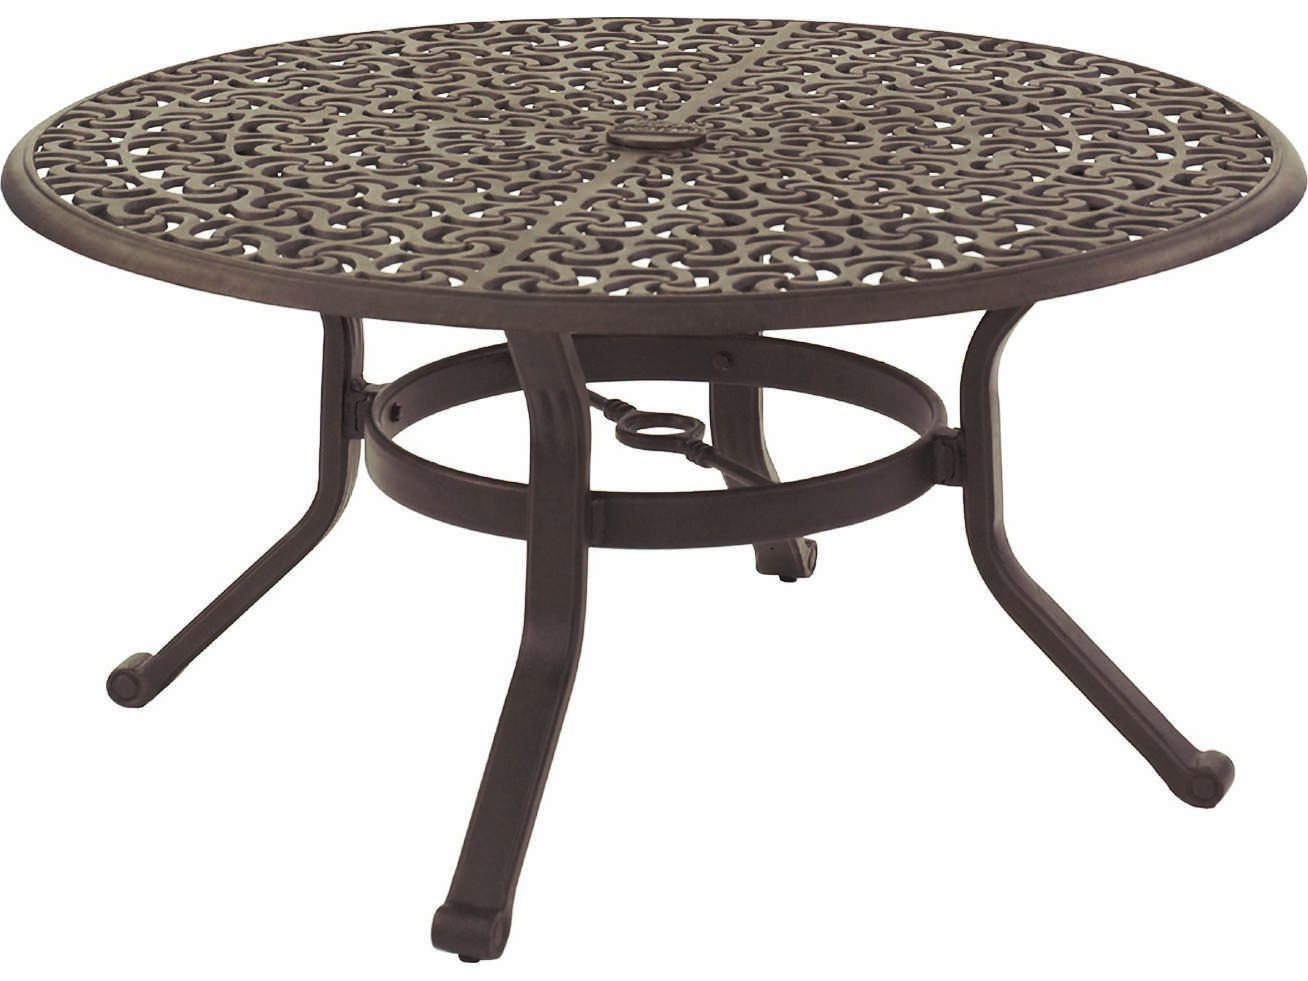 Castelle Sienna Cast Aluminum 42 Round Coffee Table Ready To Assemble Dcc42